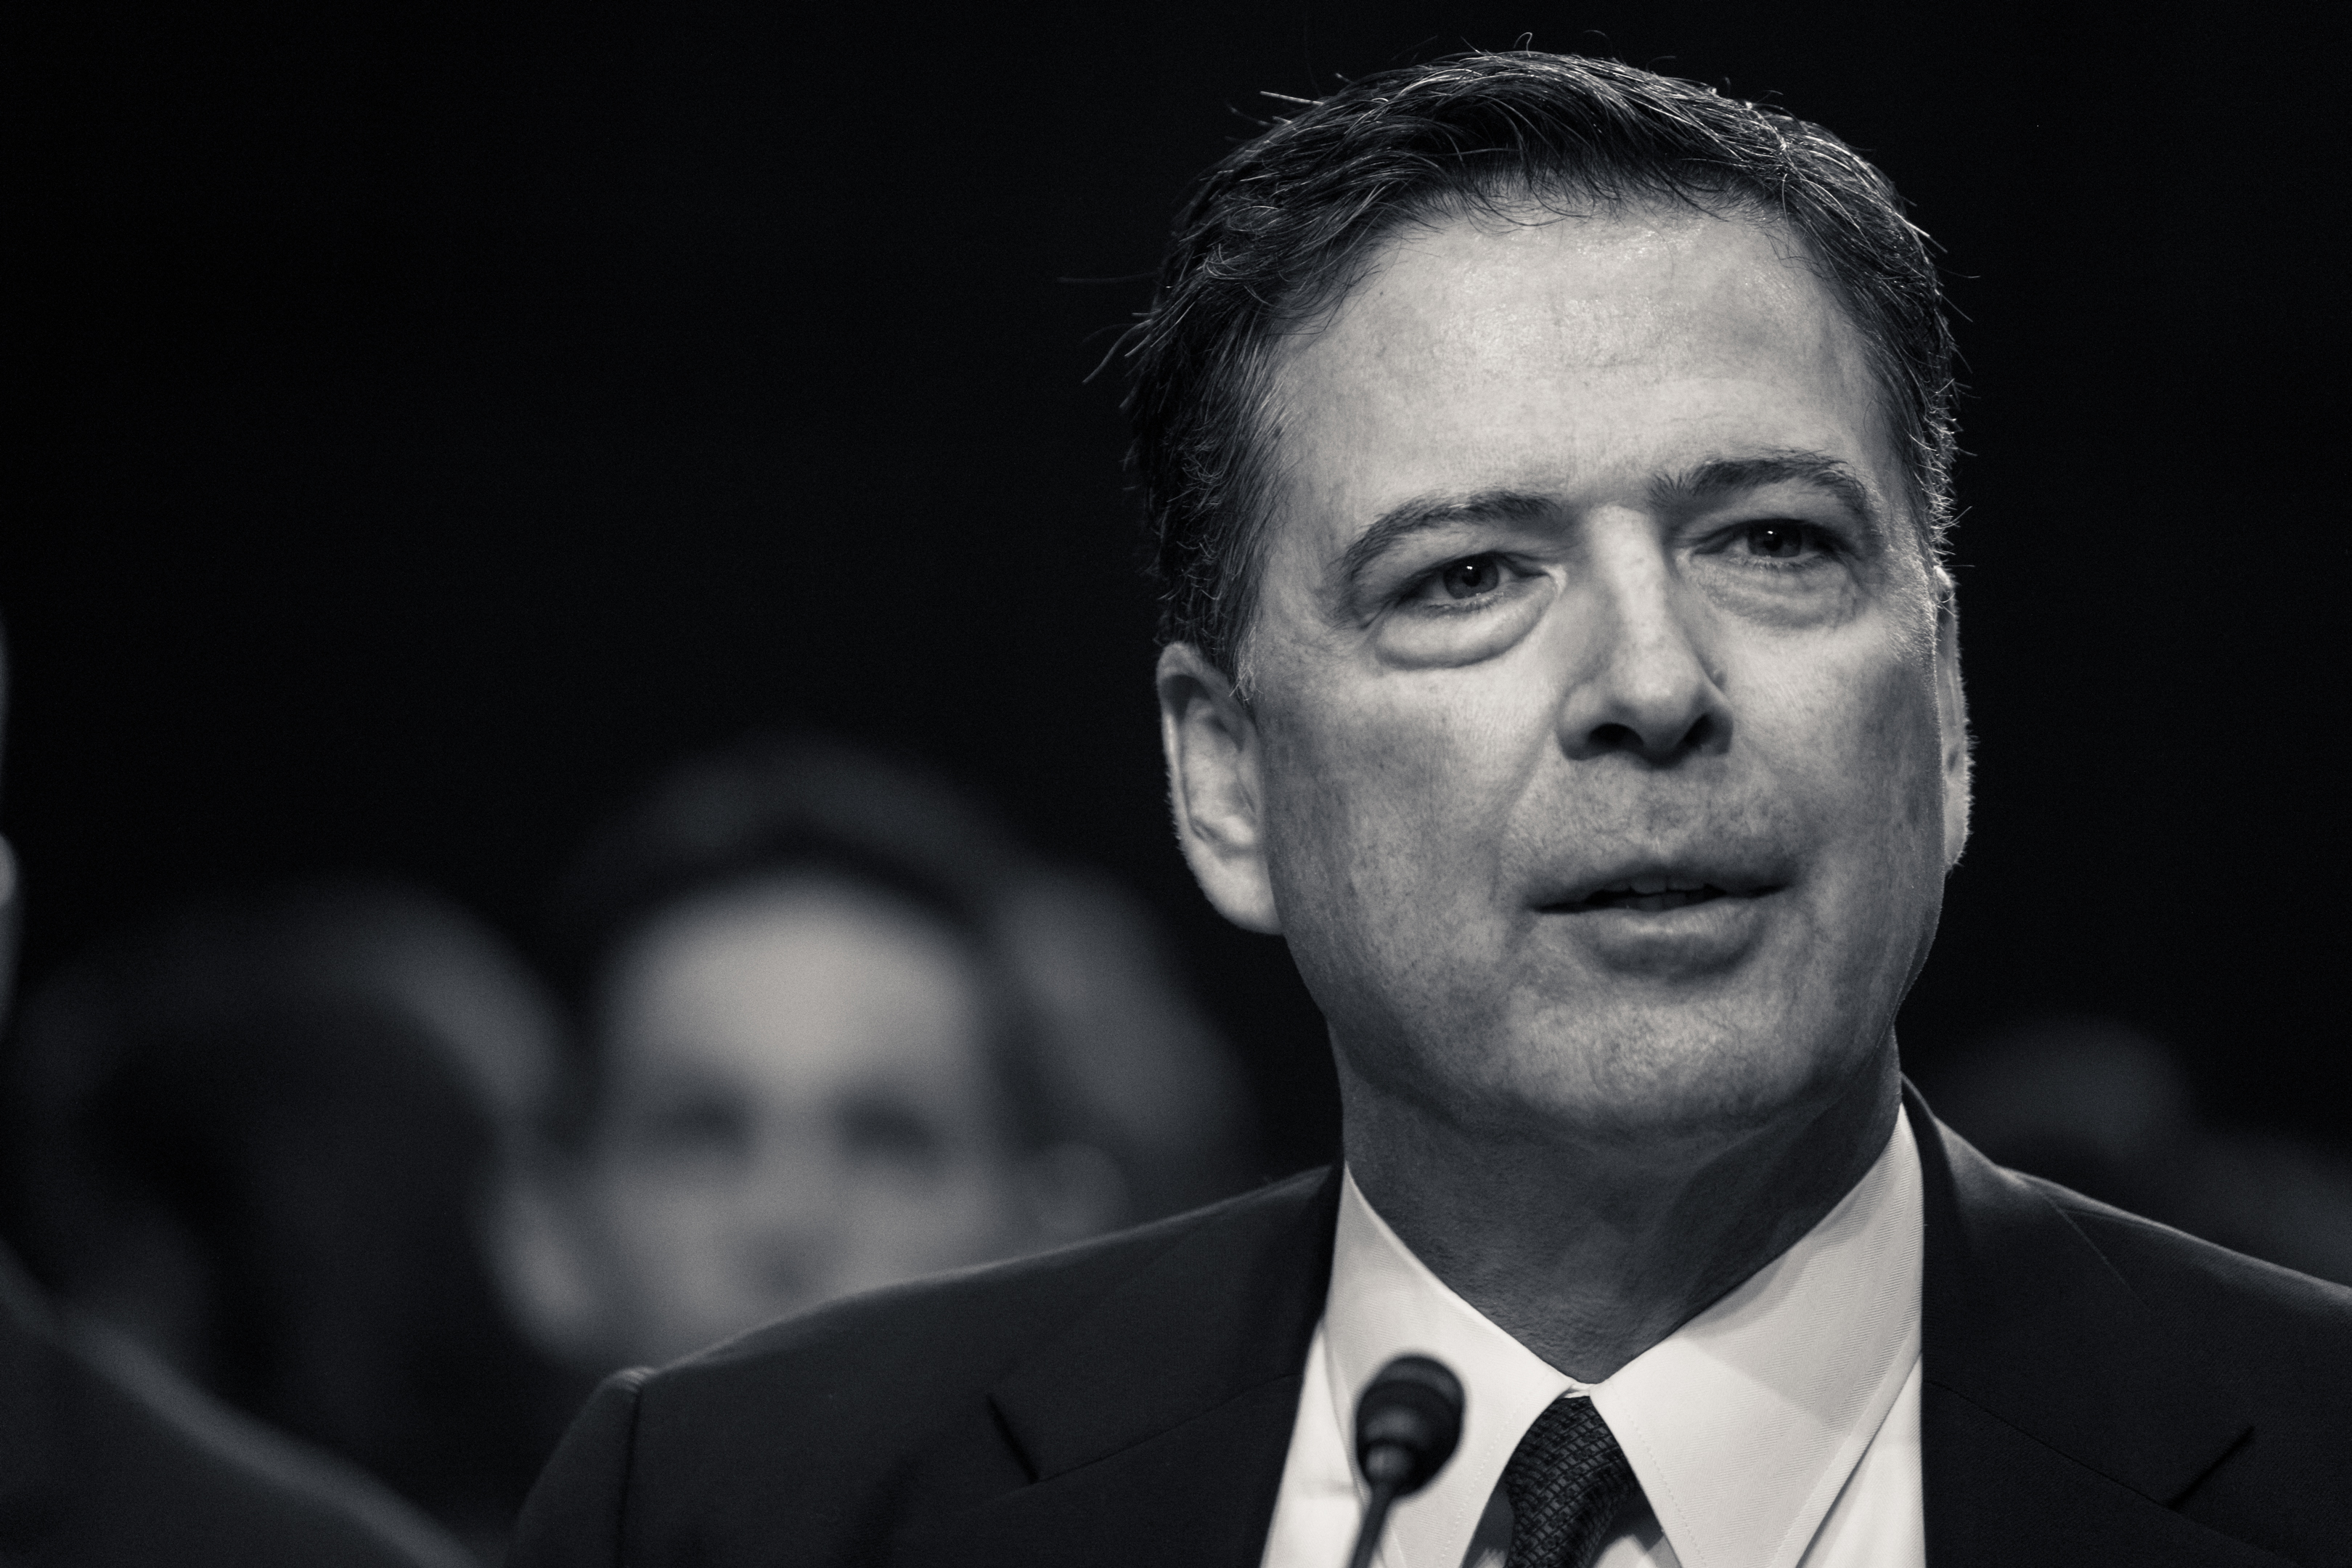 James Comey testifies before Senate in this black and white photograph